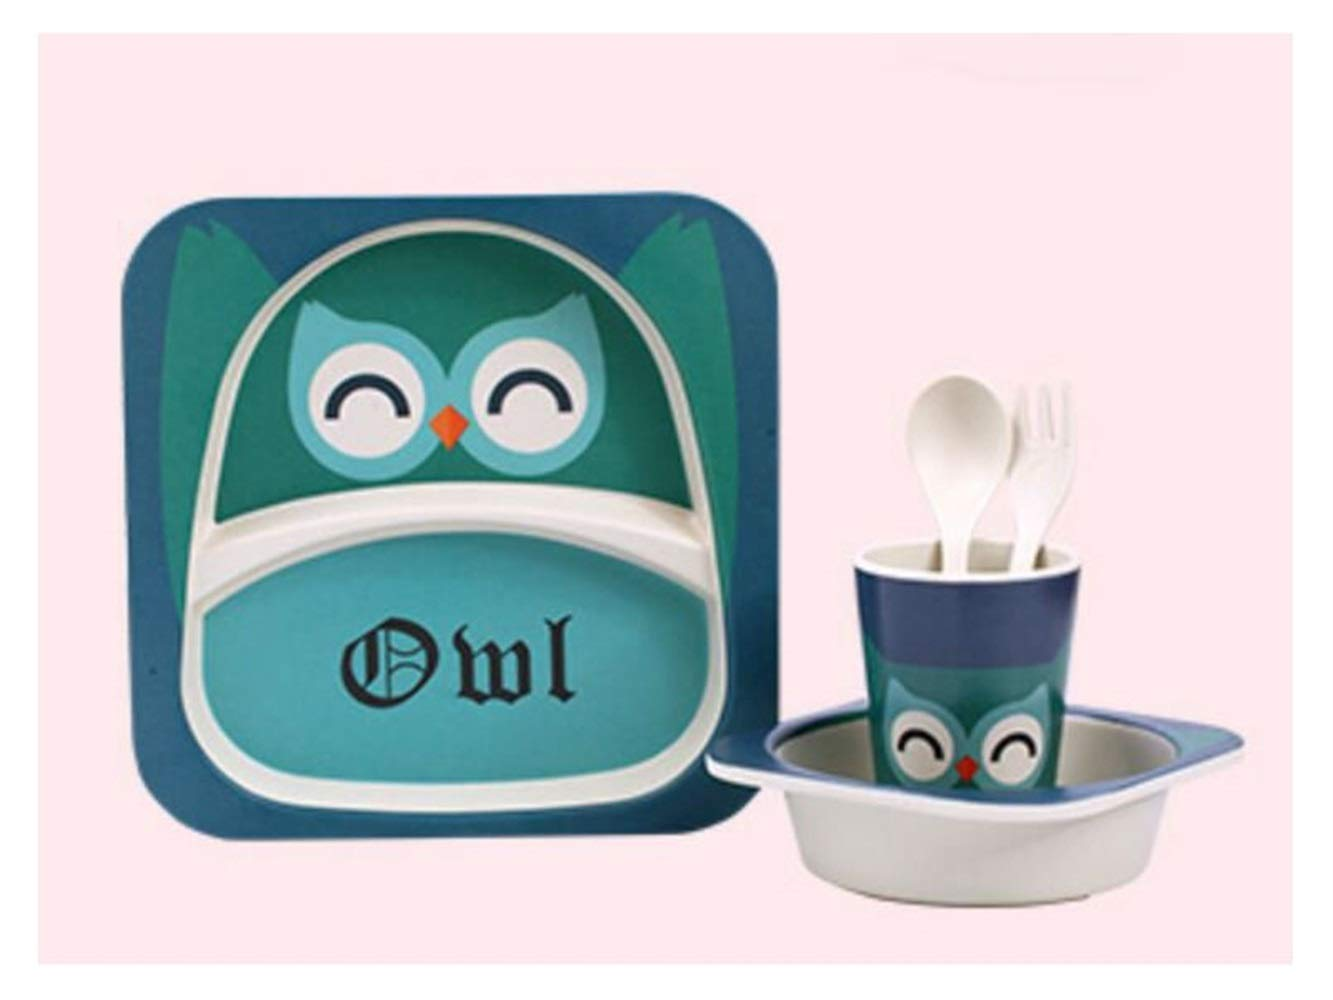 Yuchoi Contemporary Bamboo Fiber Cartoon Animal Dish Children Plate Fork Spoon Cup Set for Kids(Owl)